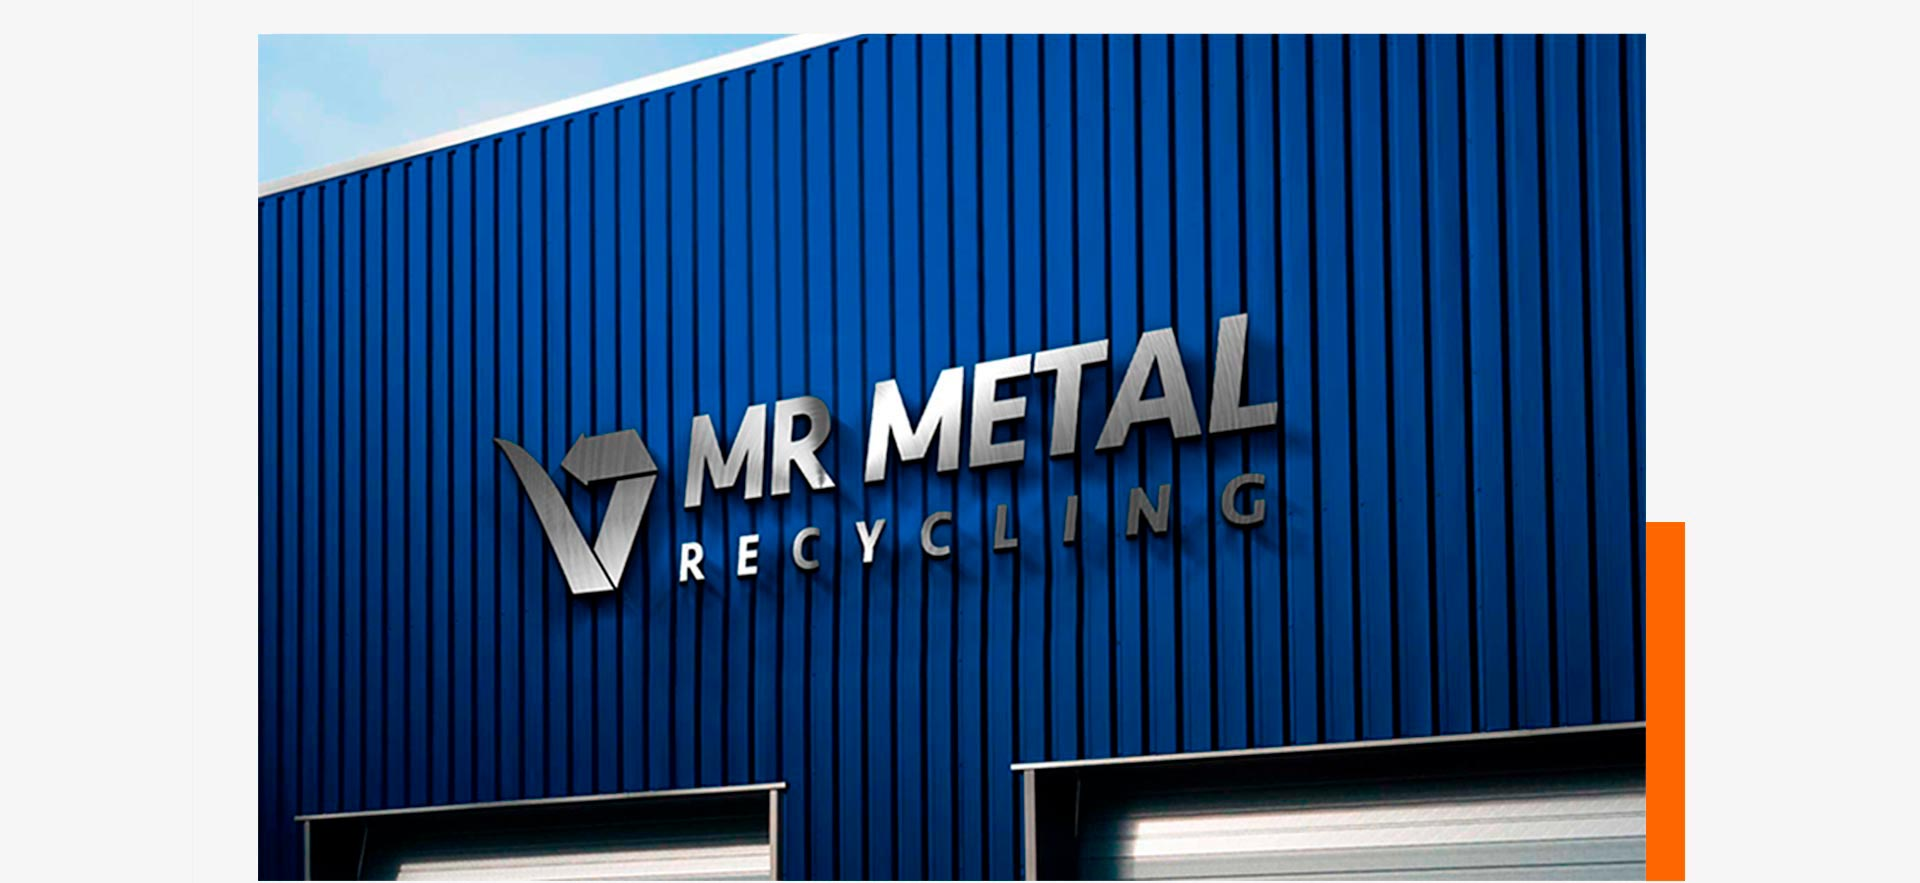 Mr Metal Recycling Sign